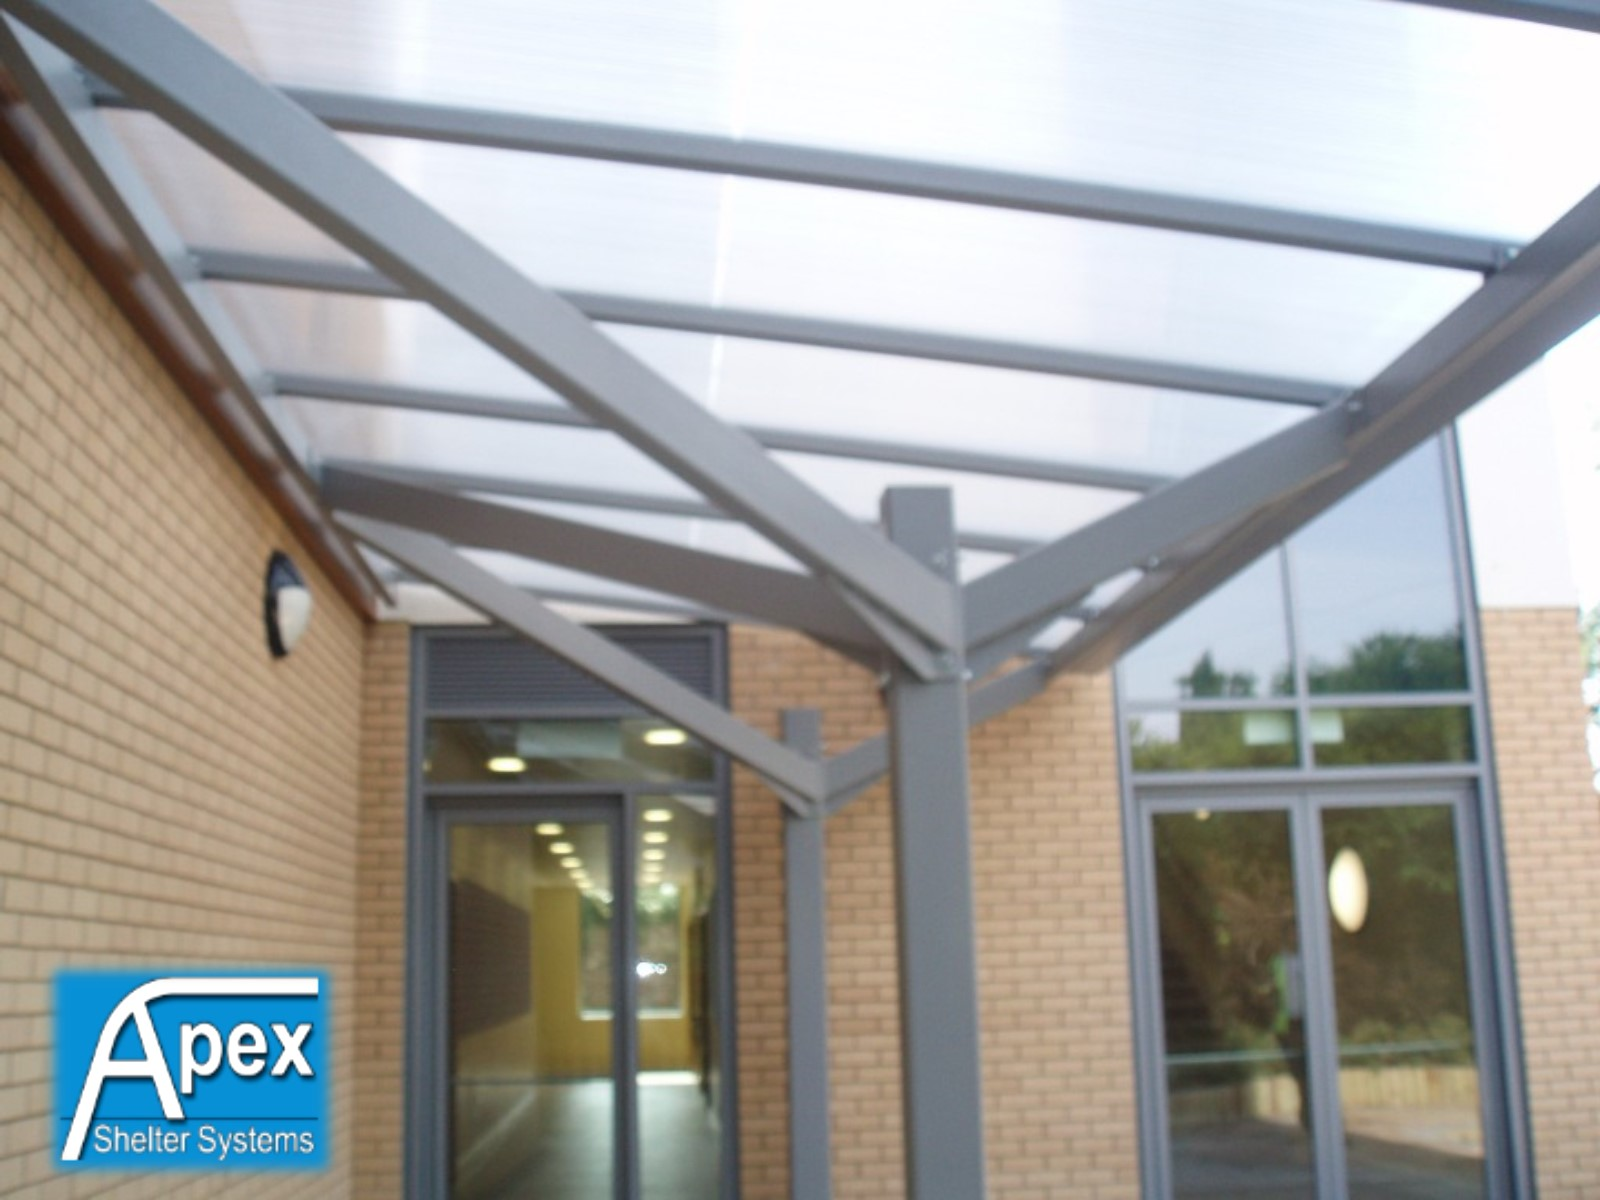 Entrance Canopies Product : Entrance walkways canopiesapex shelters